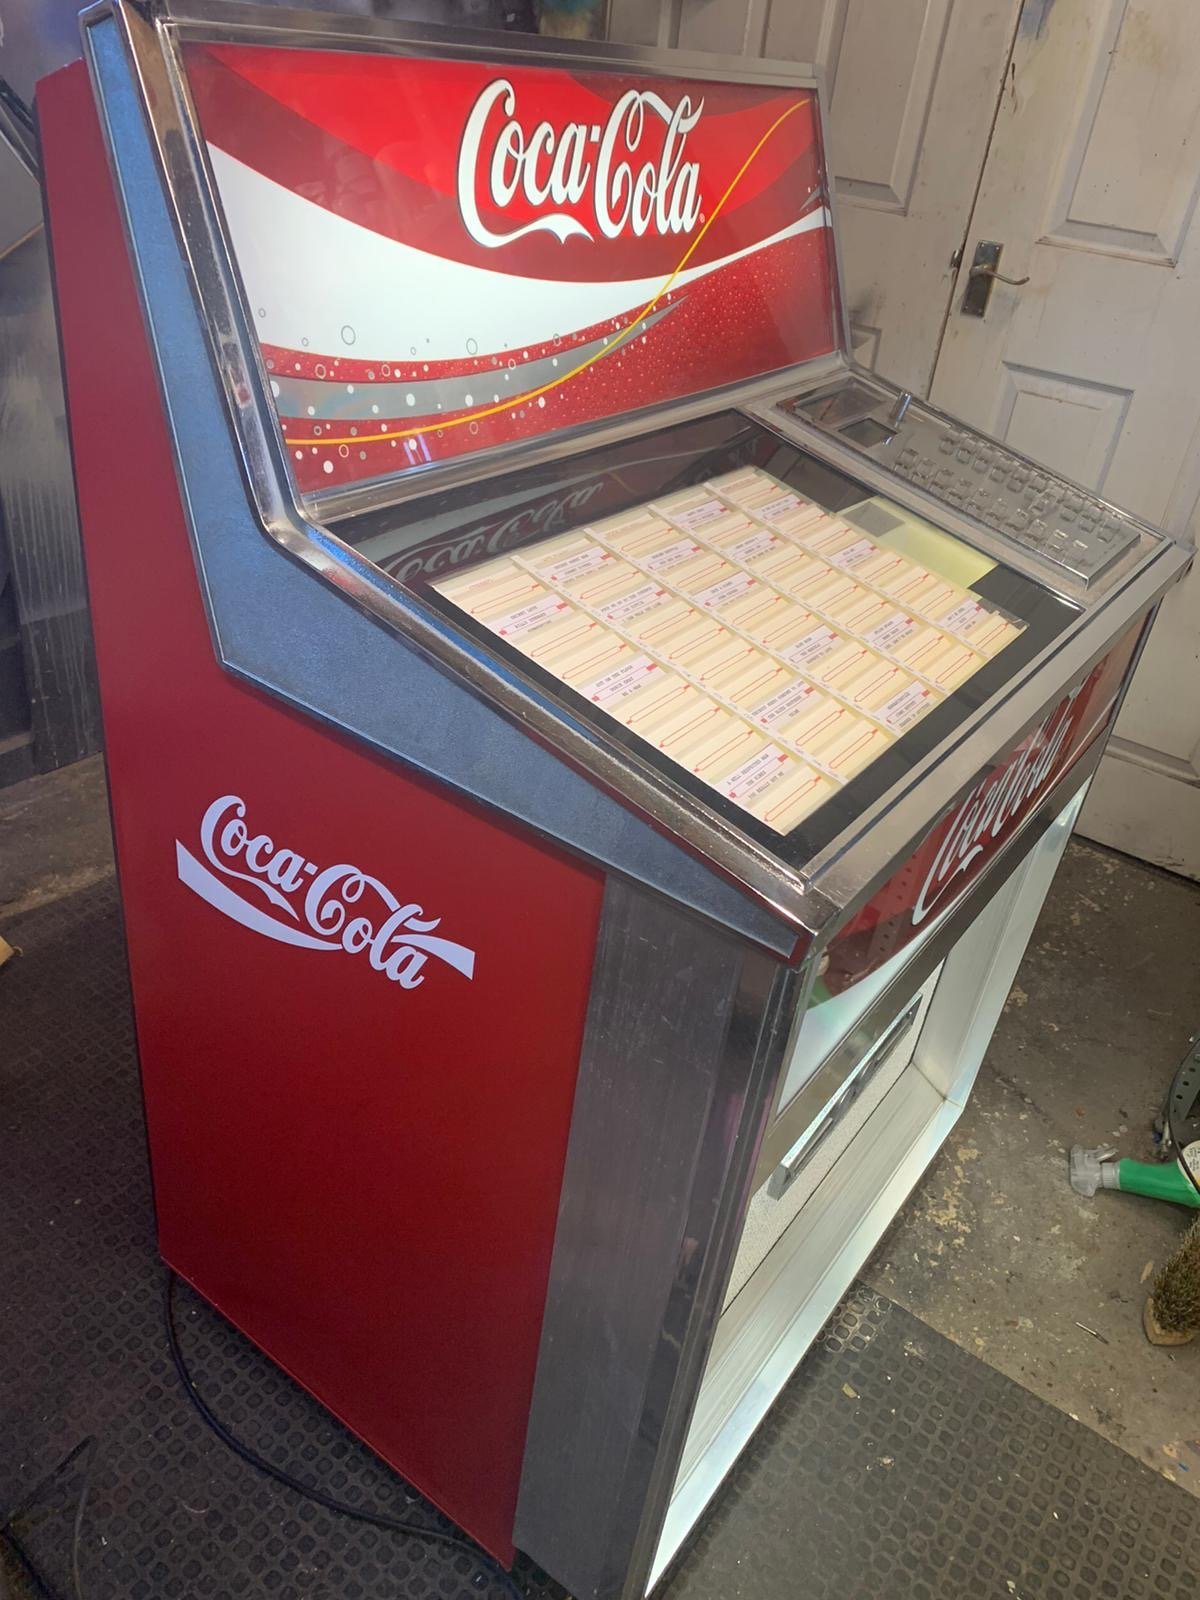 Rock-Ola 435 Coca-Cola Vintage Jukebox